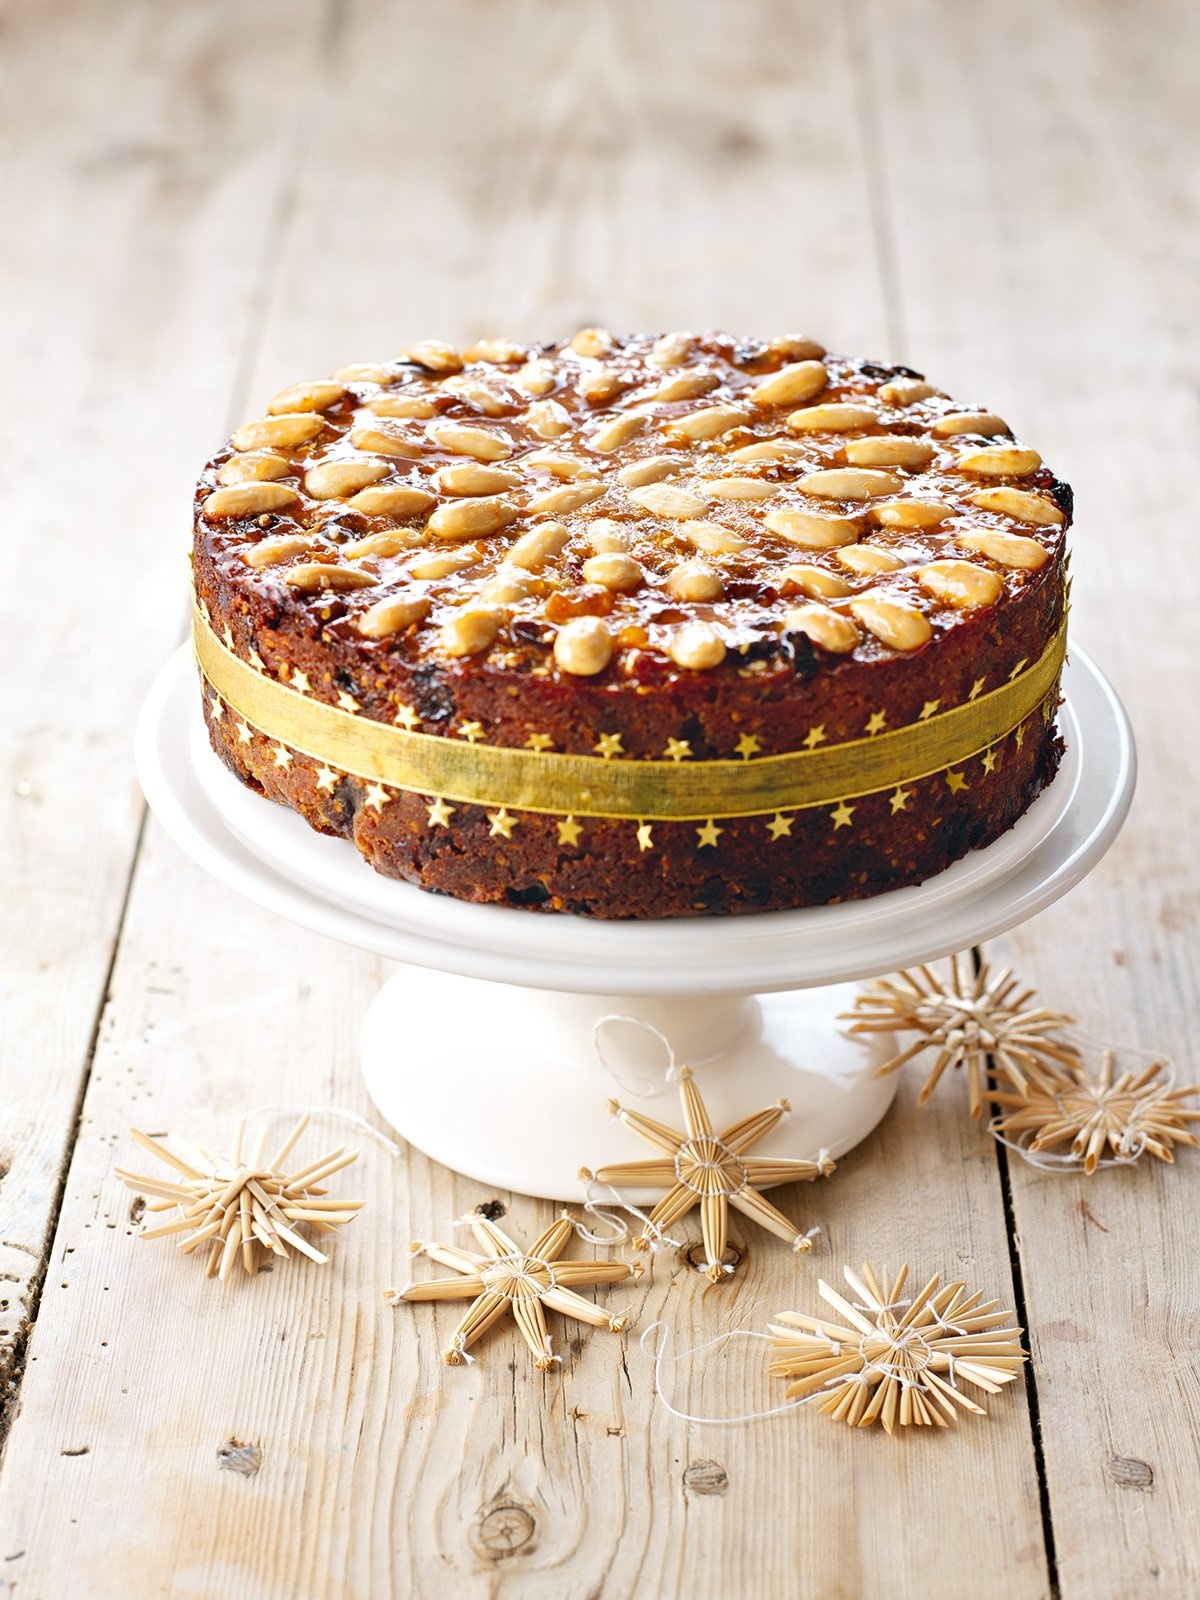 How to marzipan a christmas cake - How To Marzipan A Christmas Cake